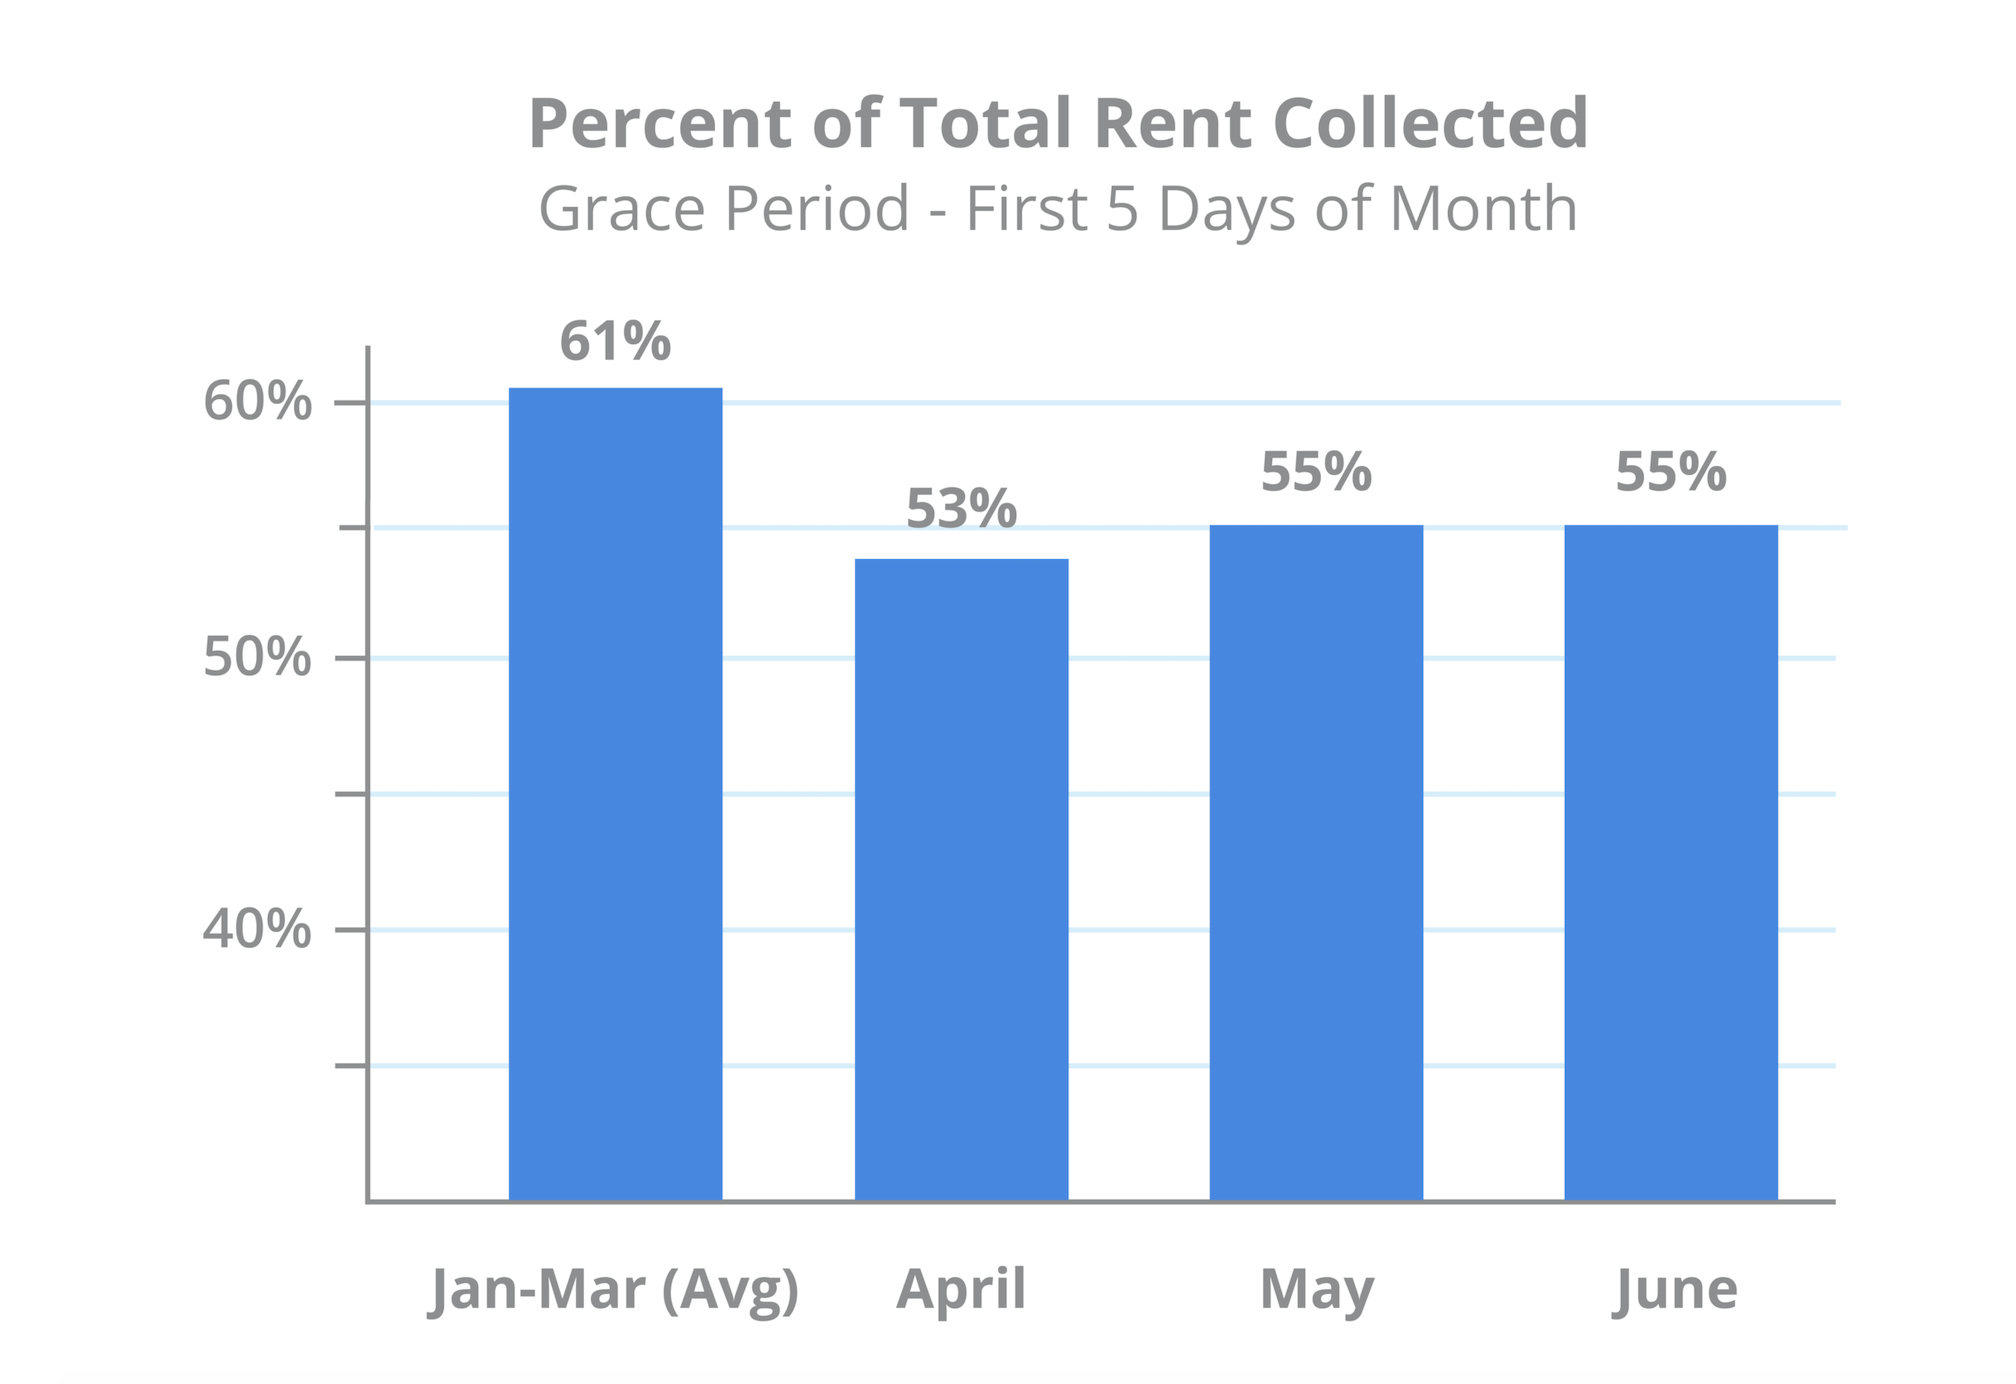 june-grace-period-rent-payments